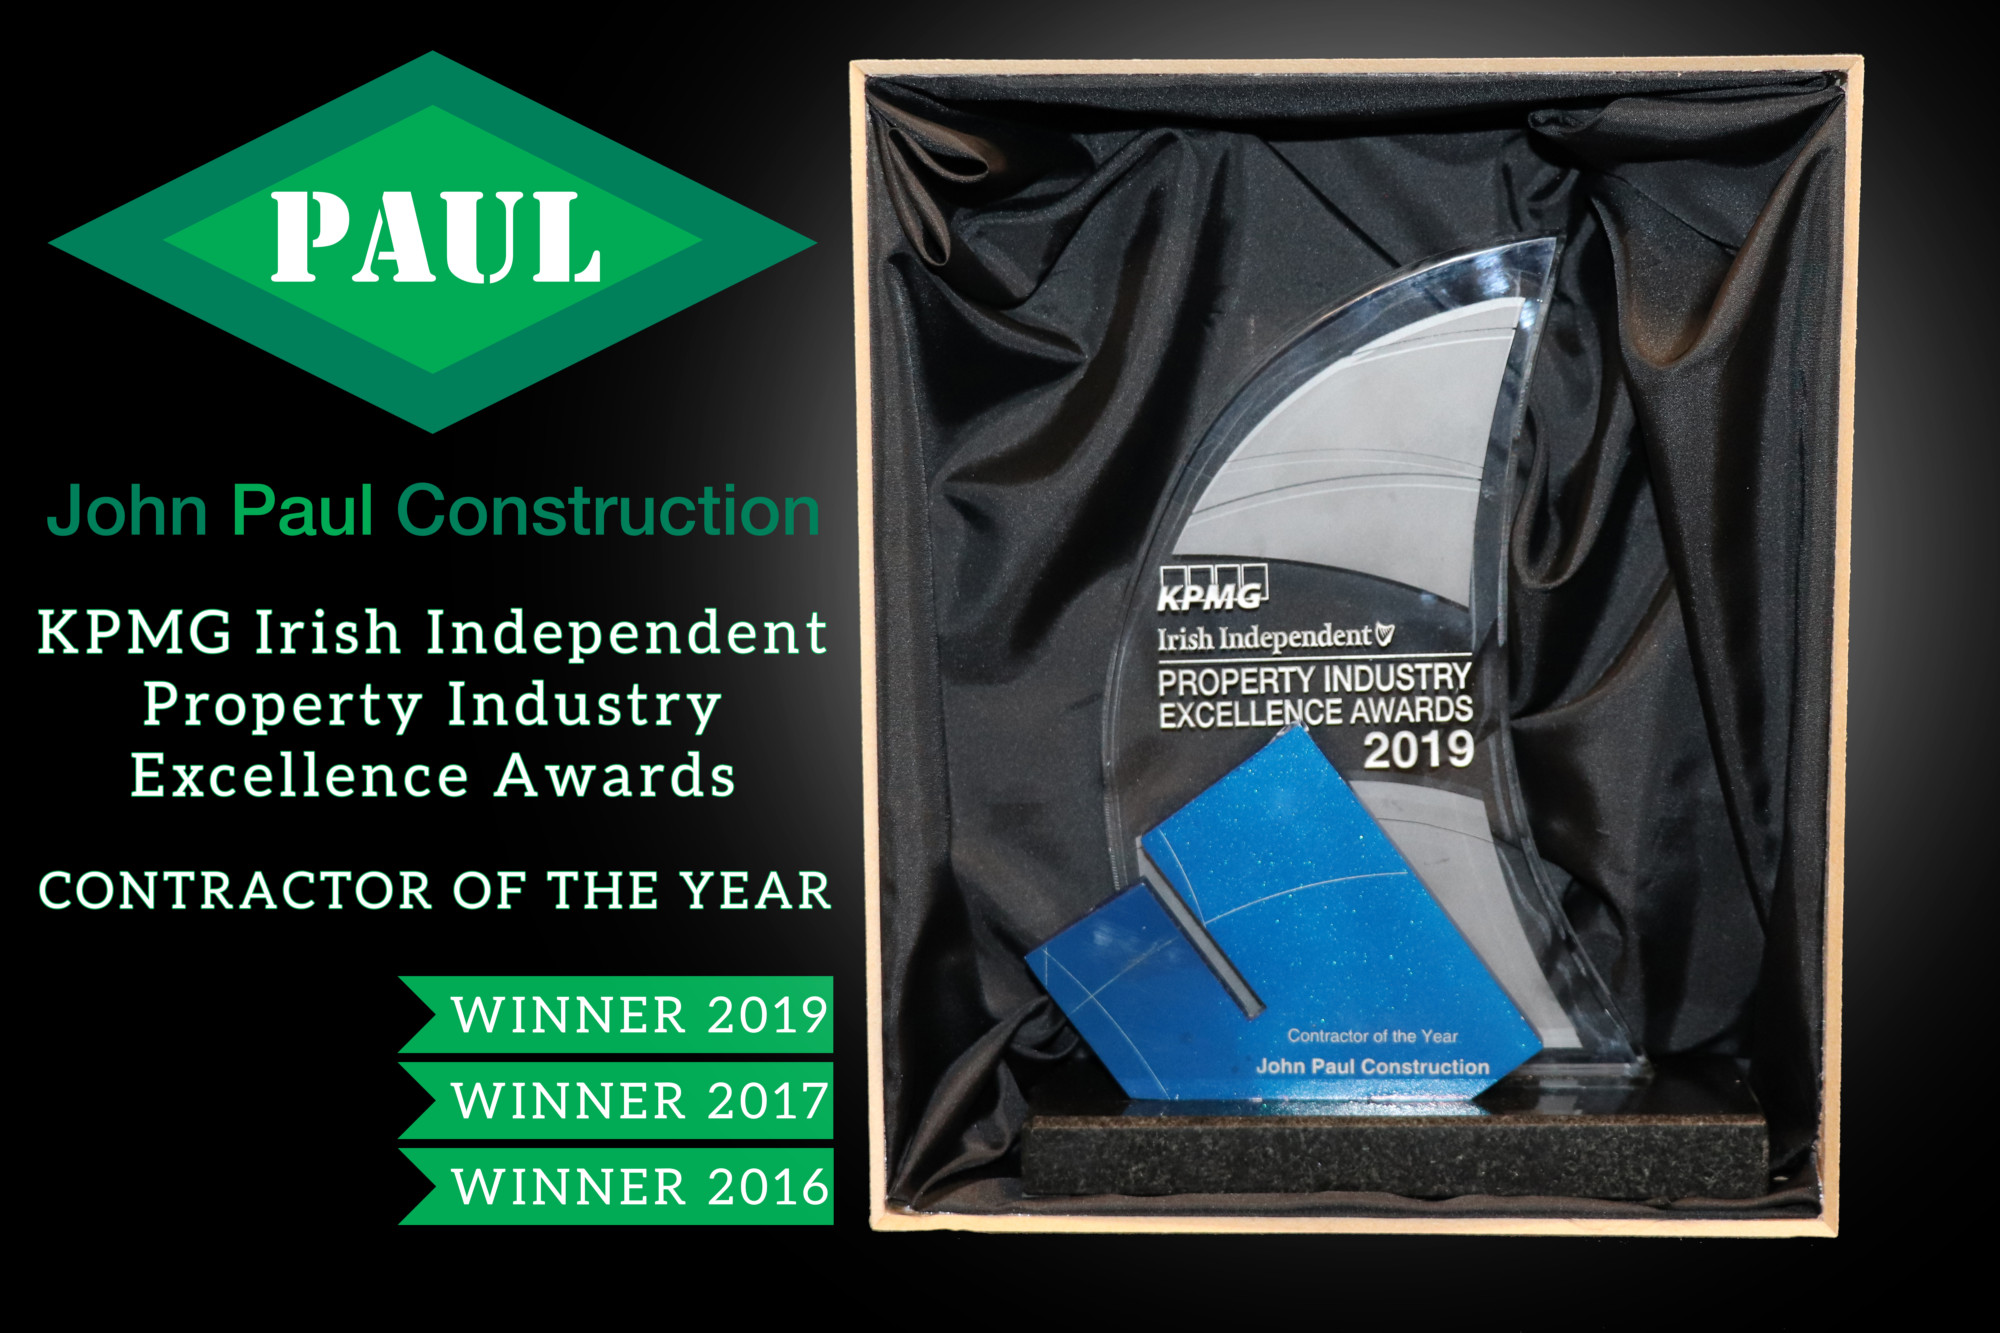 Contractor of the Year 2019